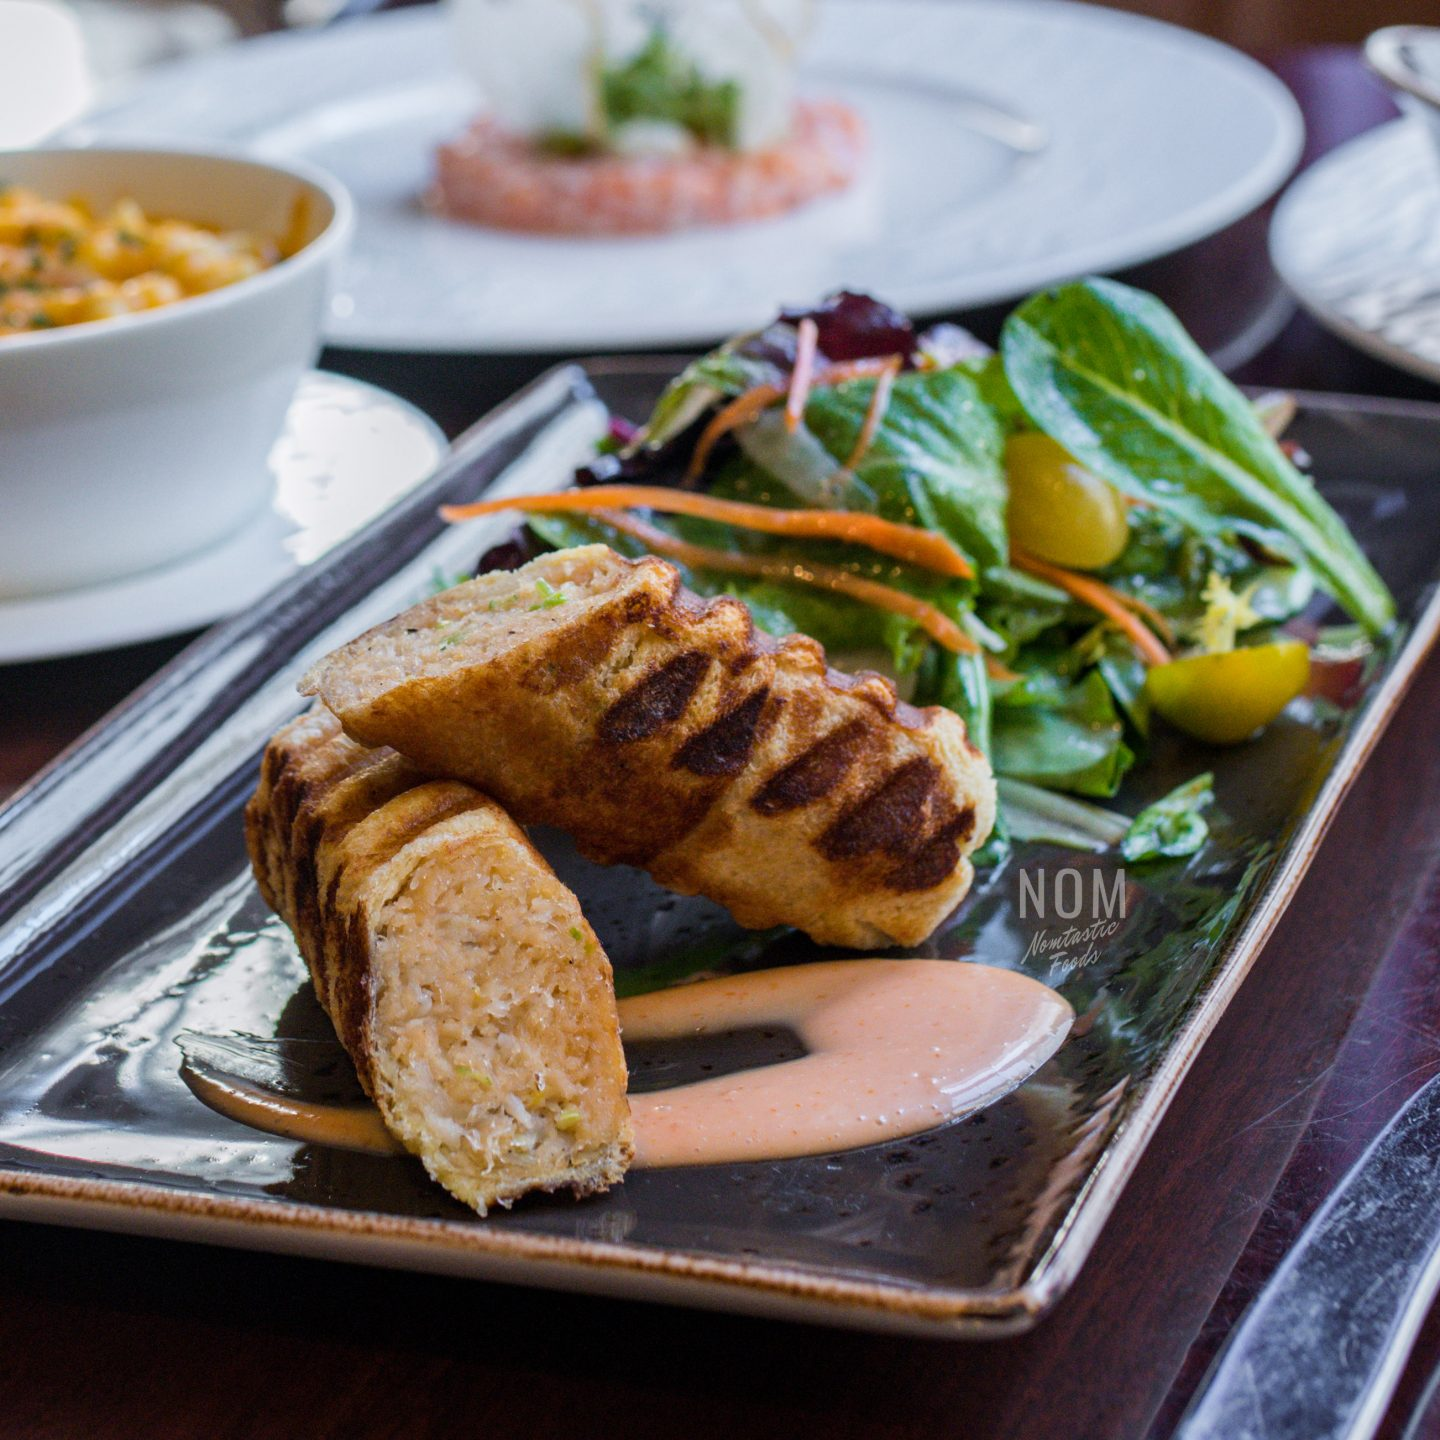 Nob Hill Club: American Food With Sophistication - Nomtastic Foods